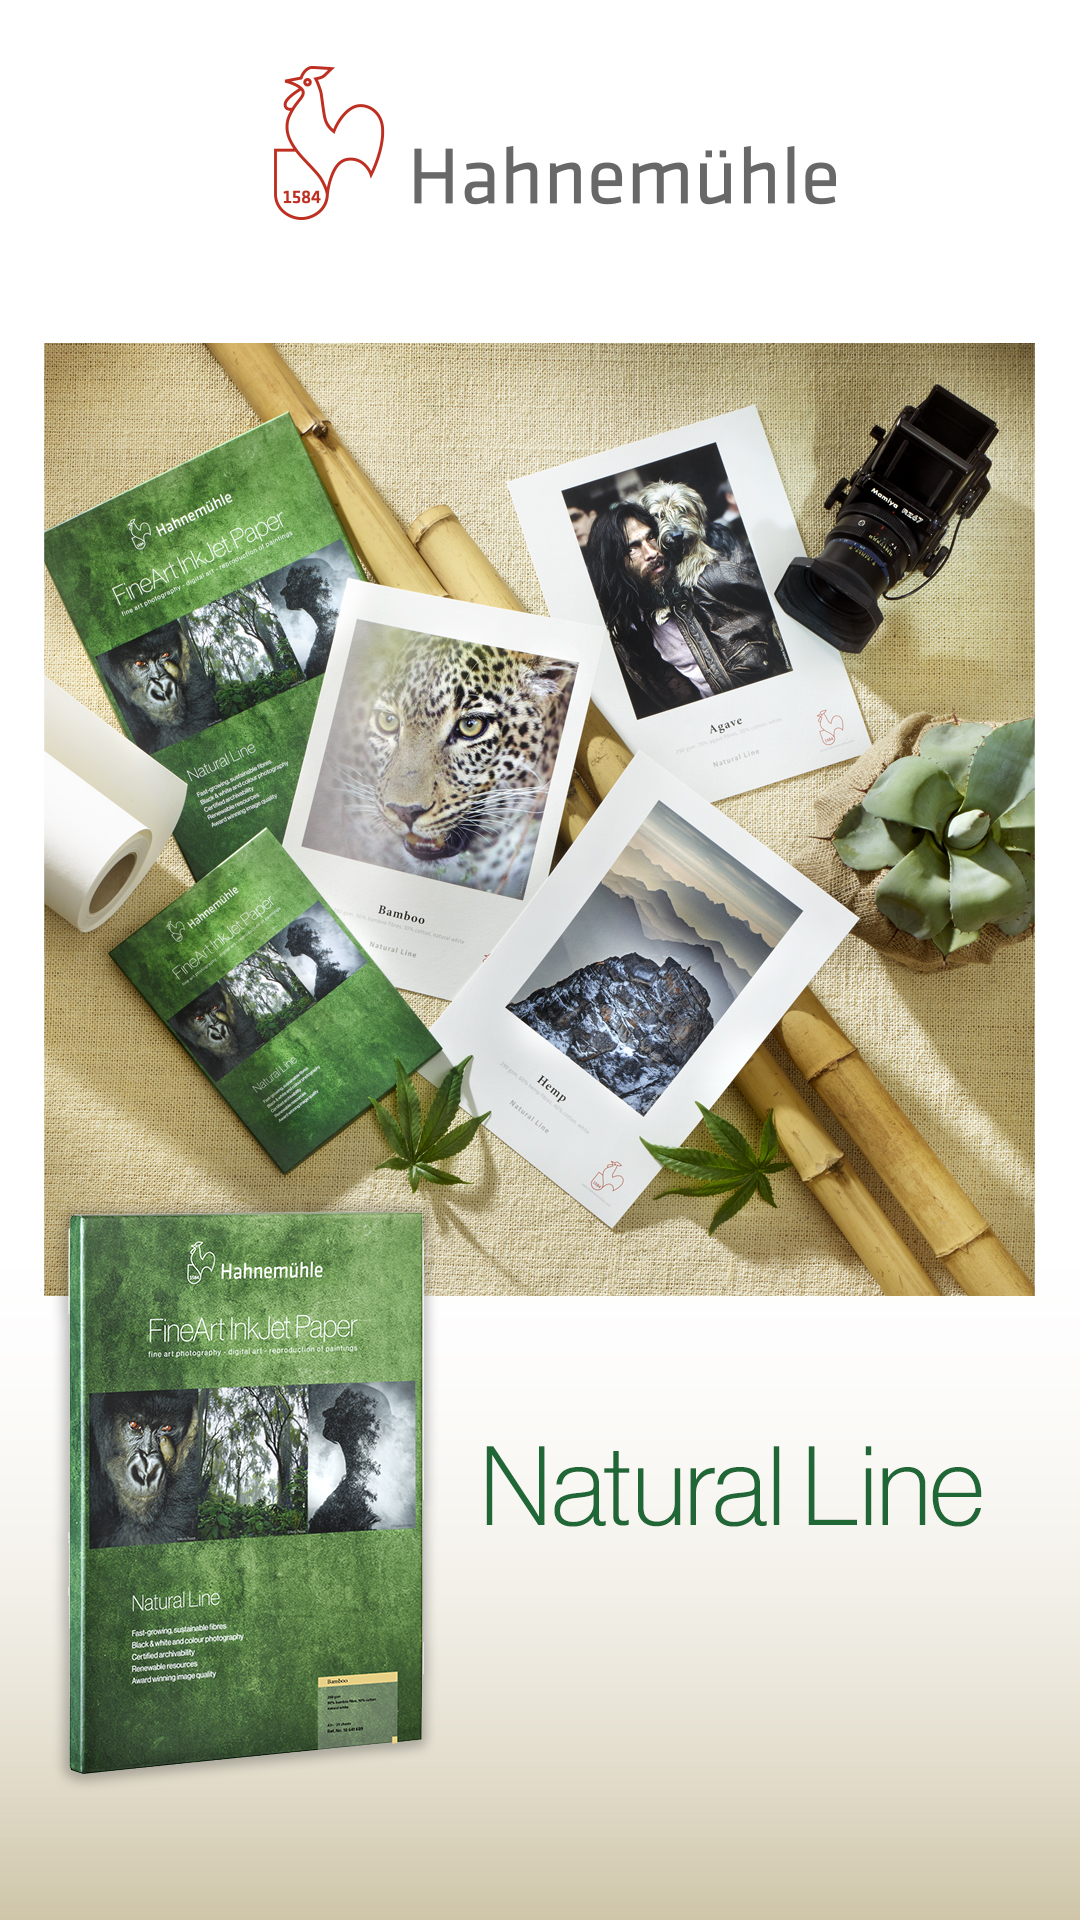 Hahnemuhle natural line